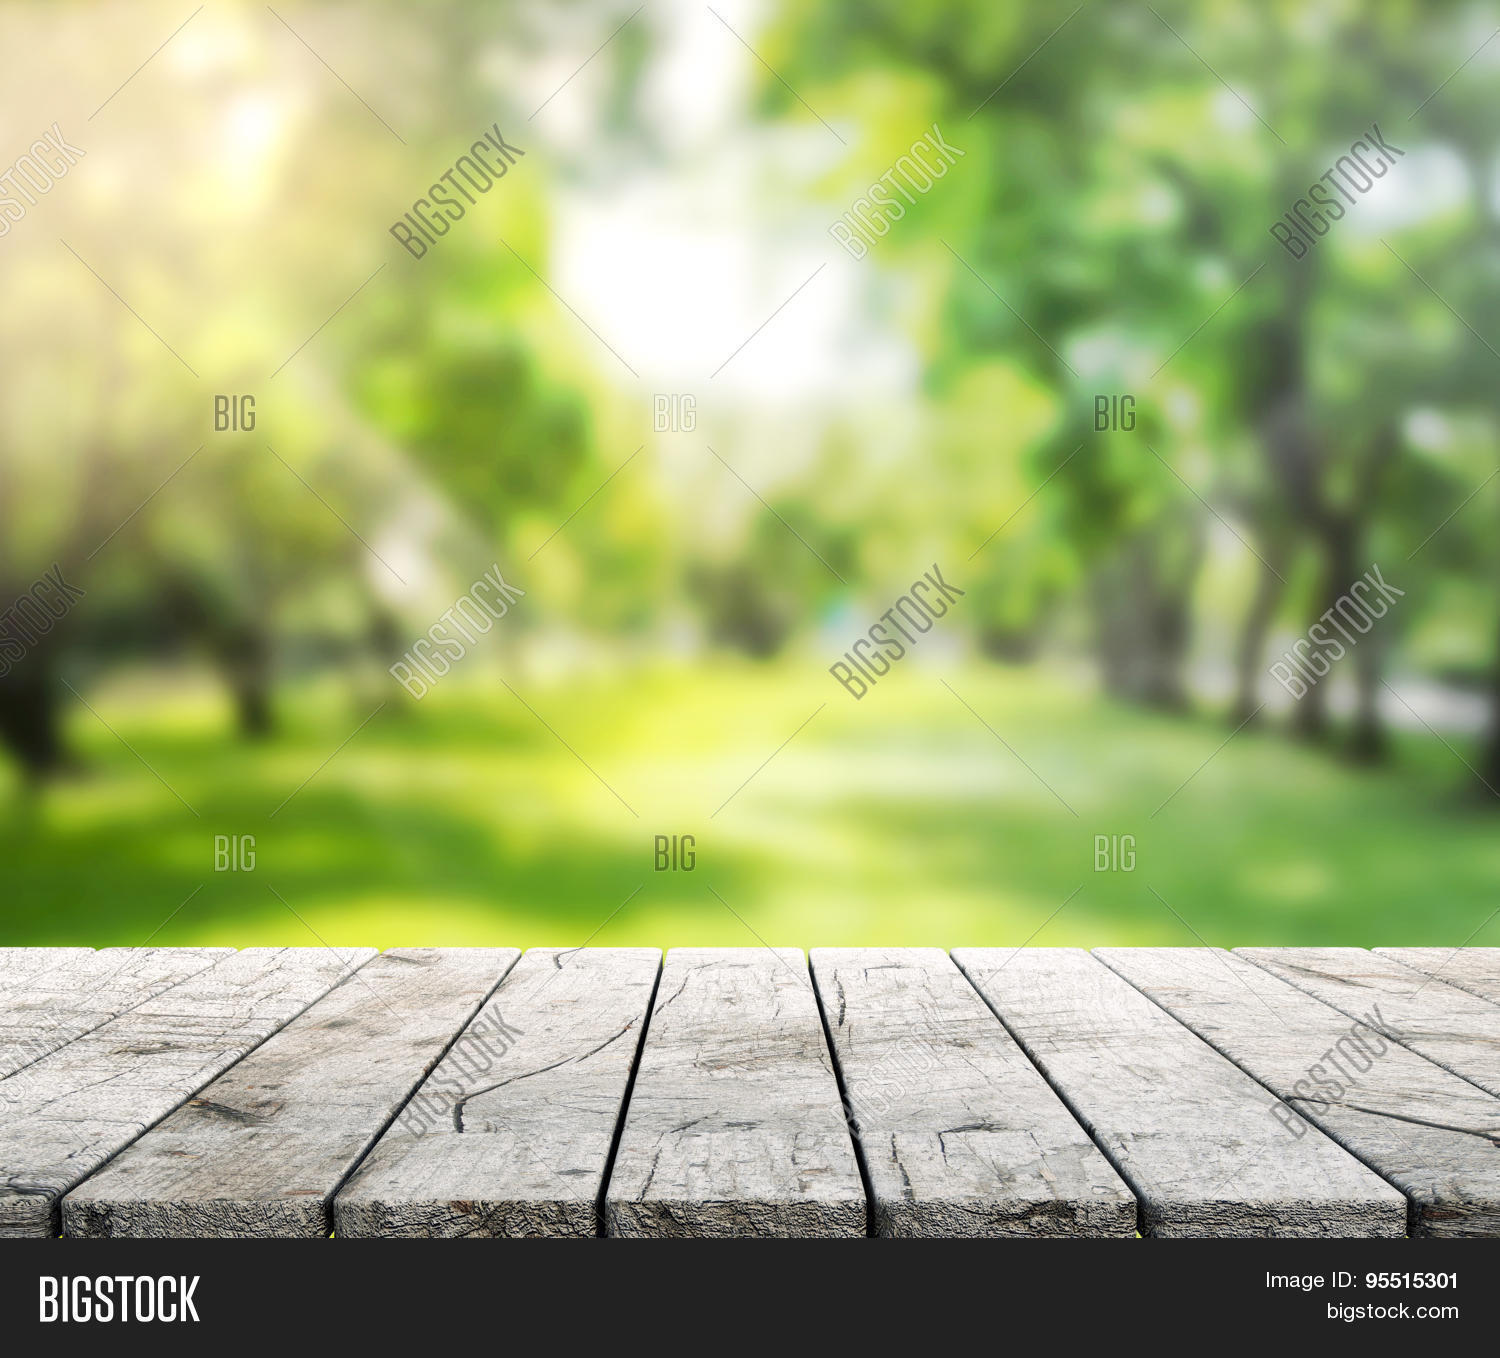 Table Top Blur Nature Image u0026 Photo (Free Trial)  Bigstock